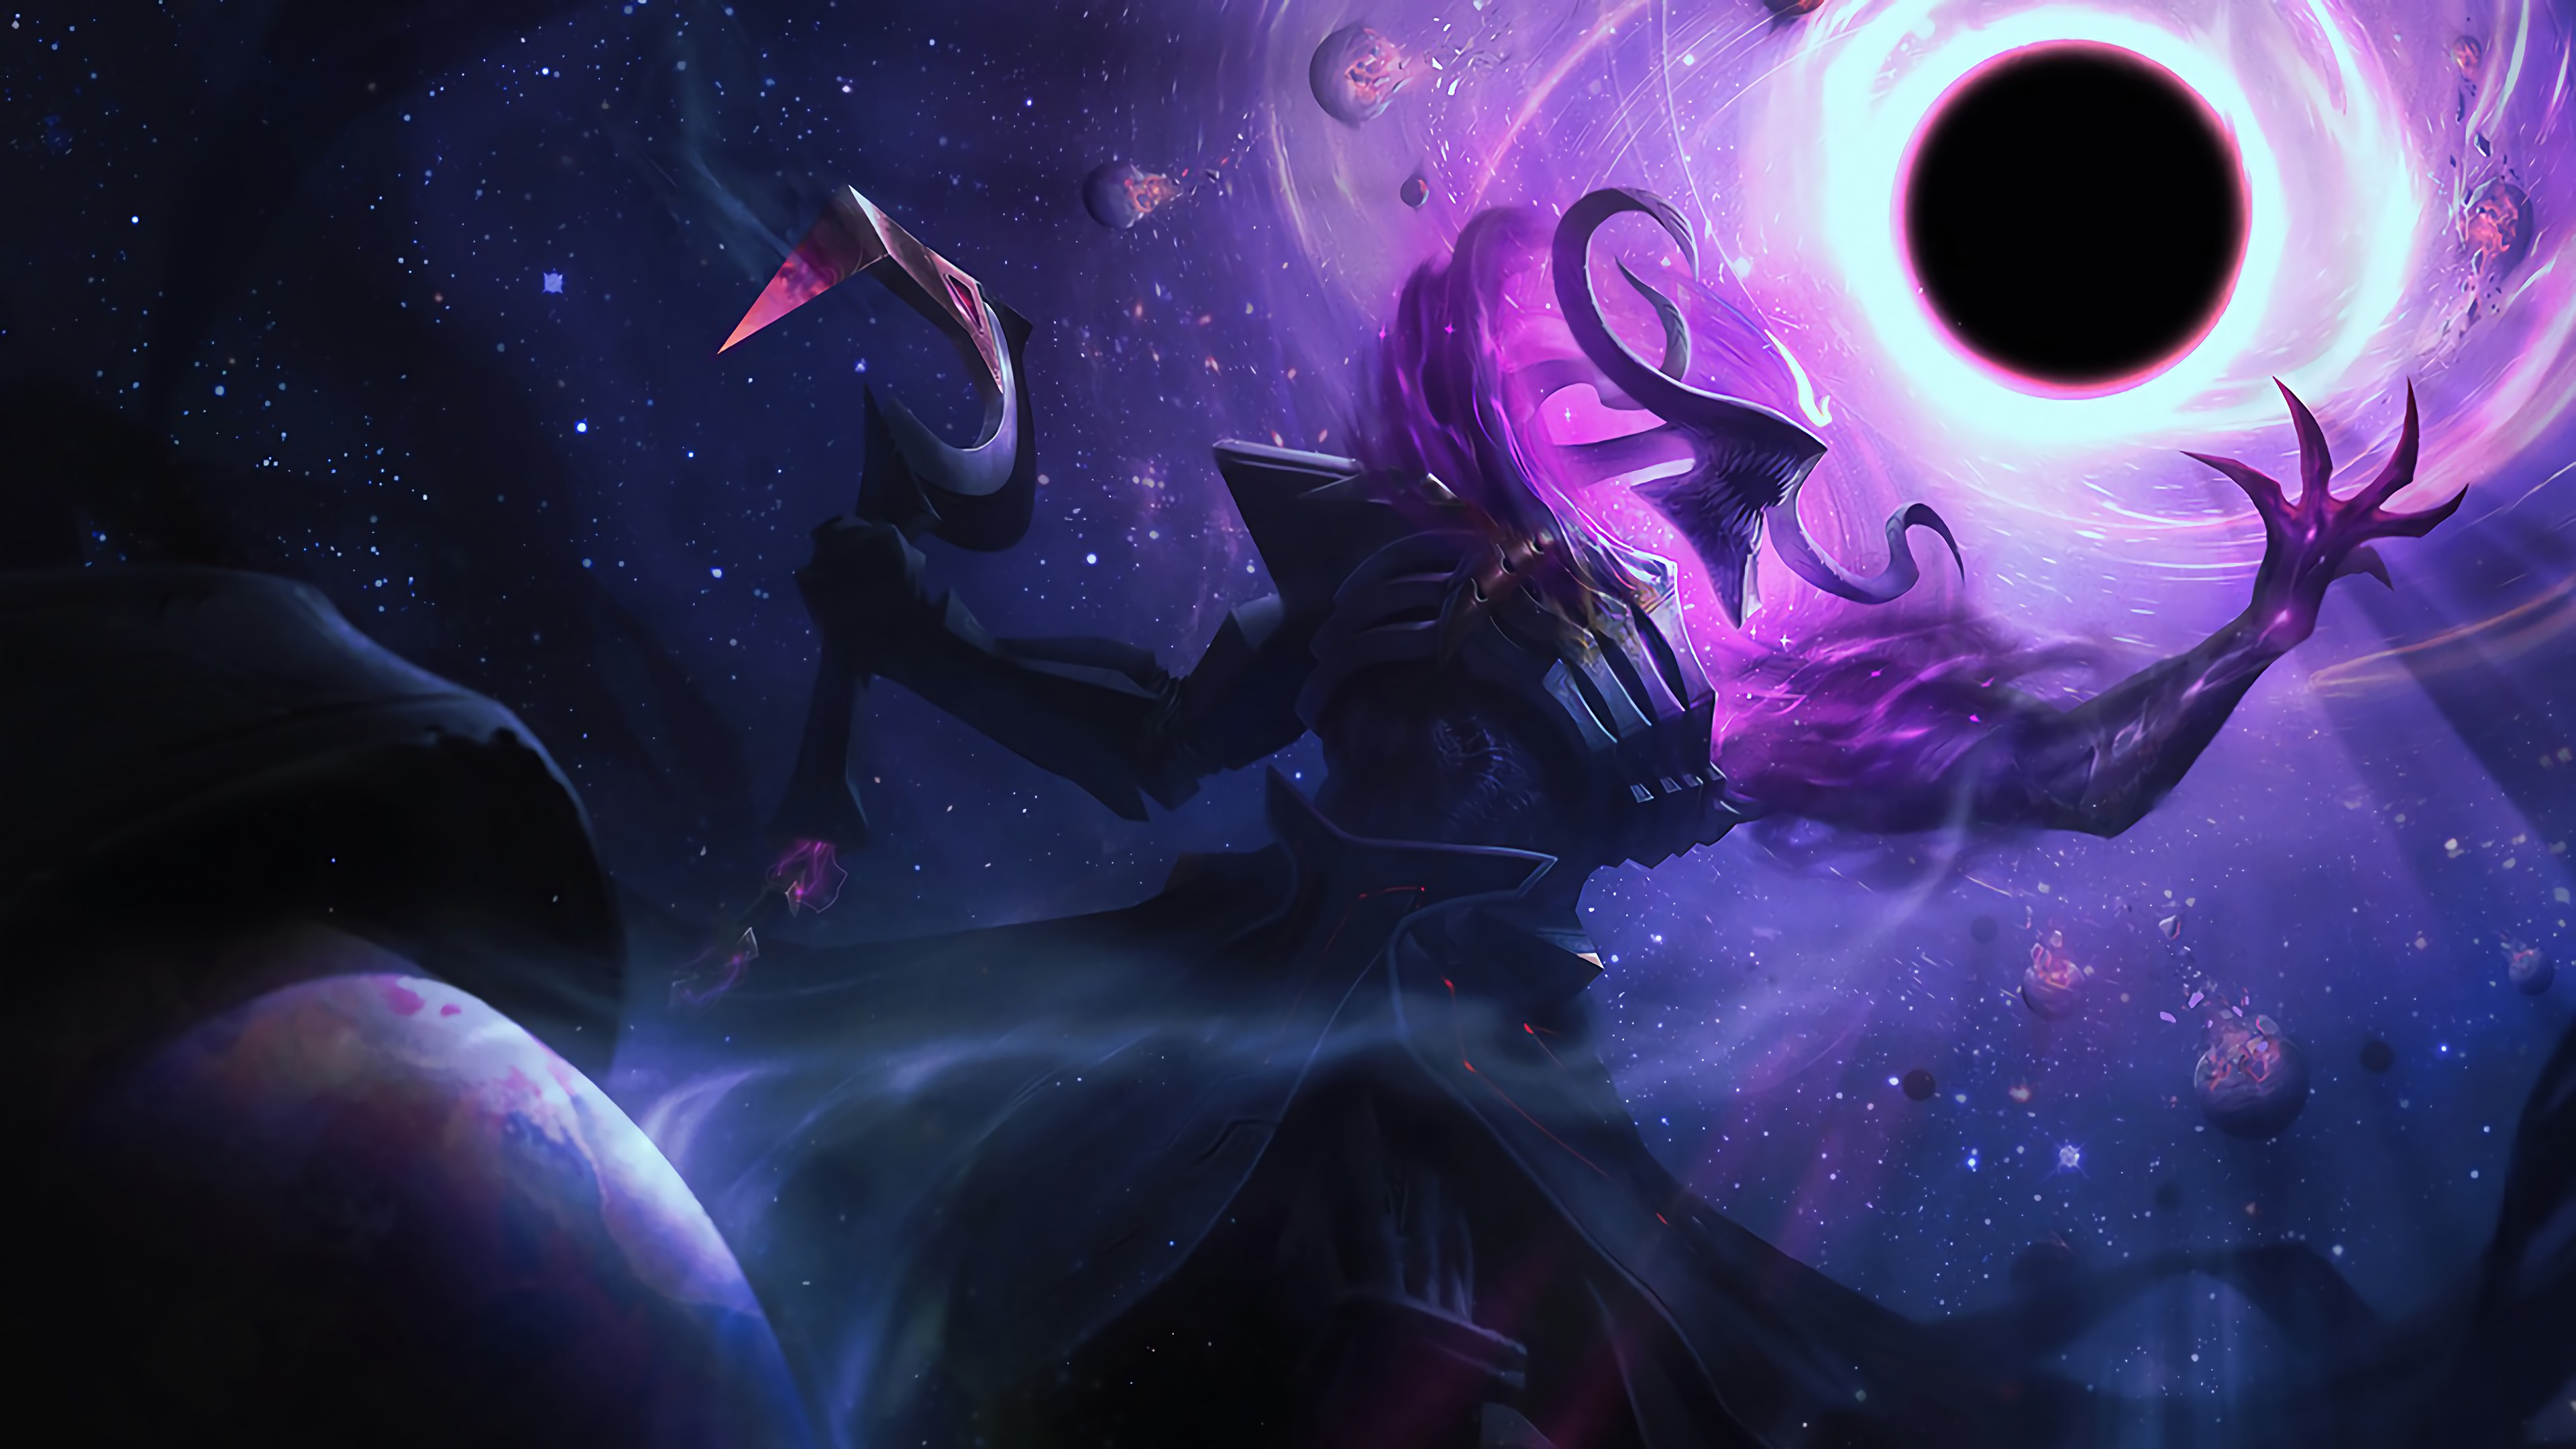 dark star thresh - lolwallpapers